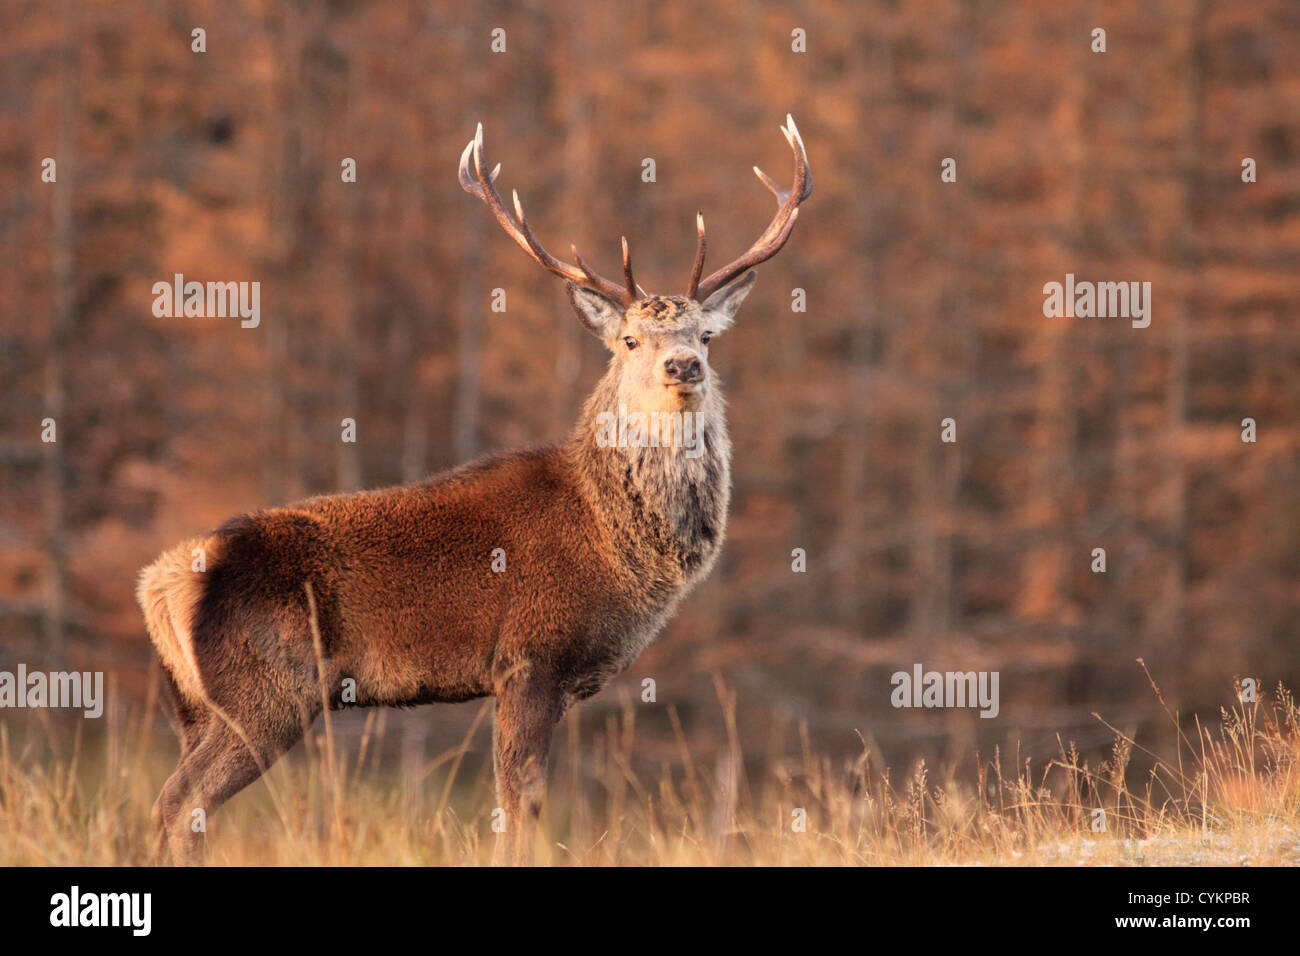 UK Scotland Red Deer Stag in the Highlands autumn - Stock Image